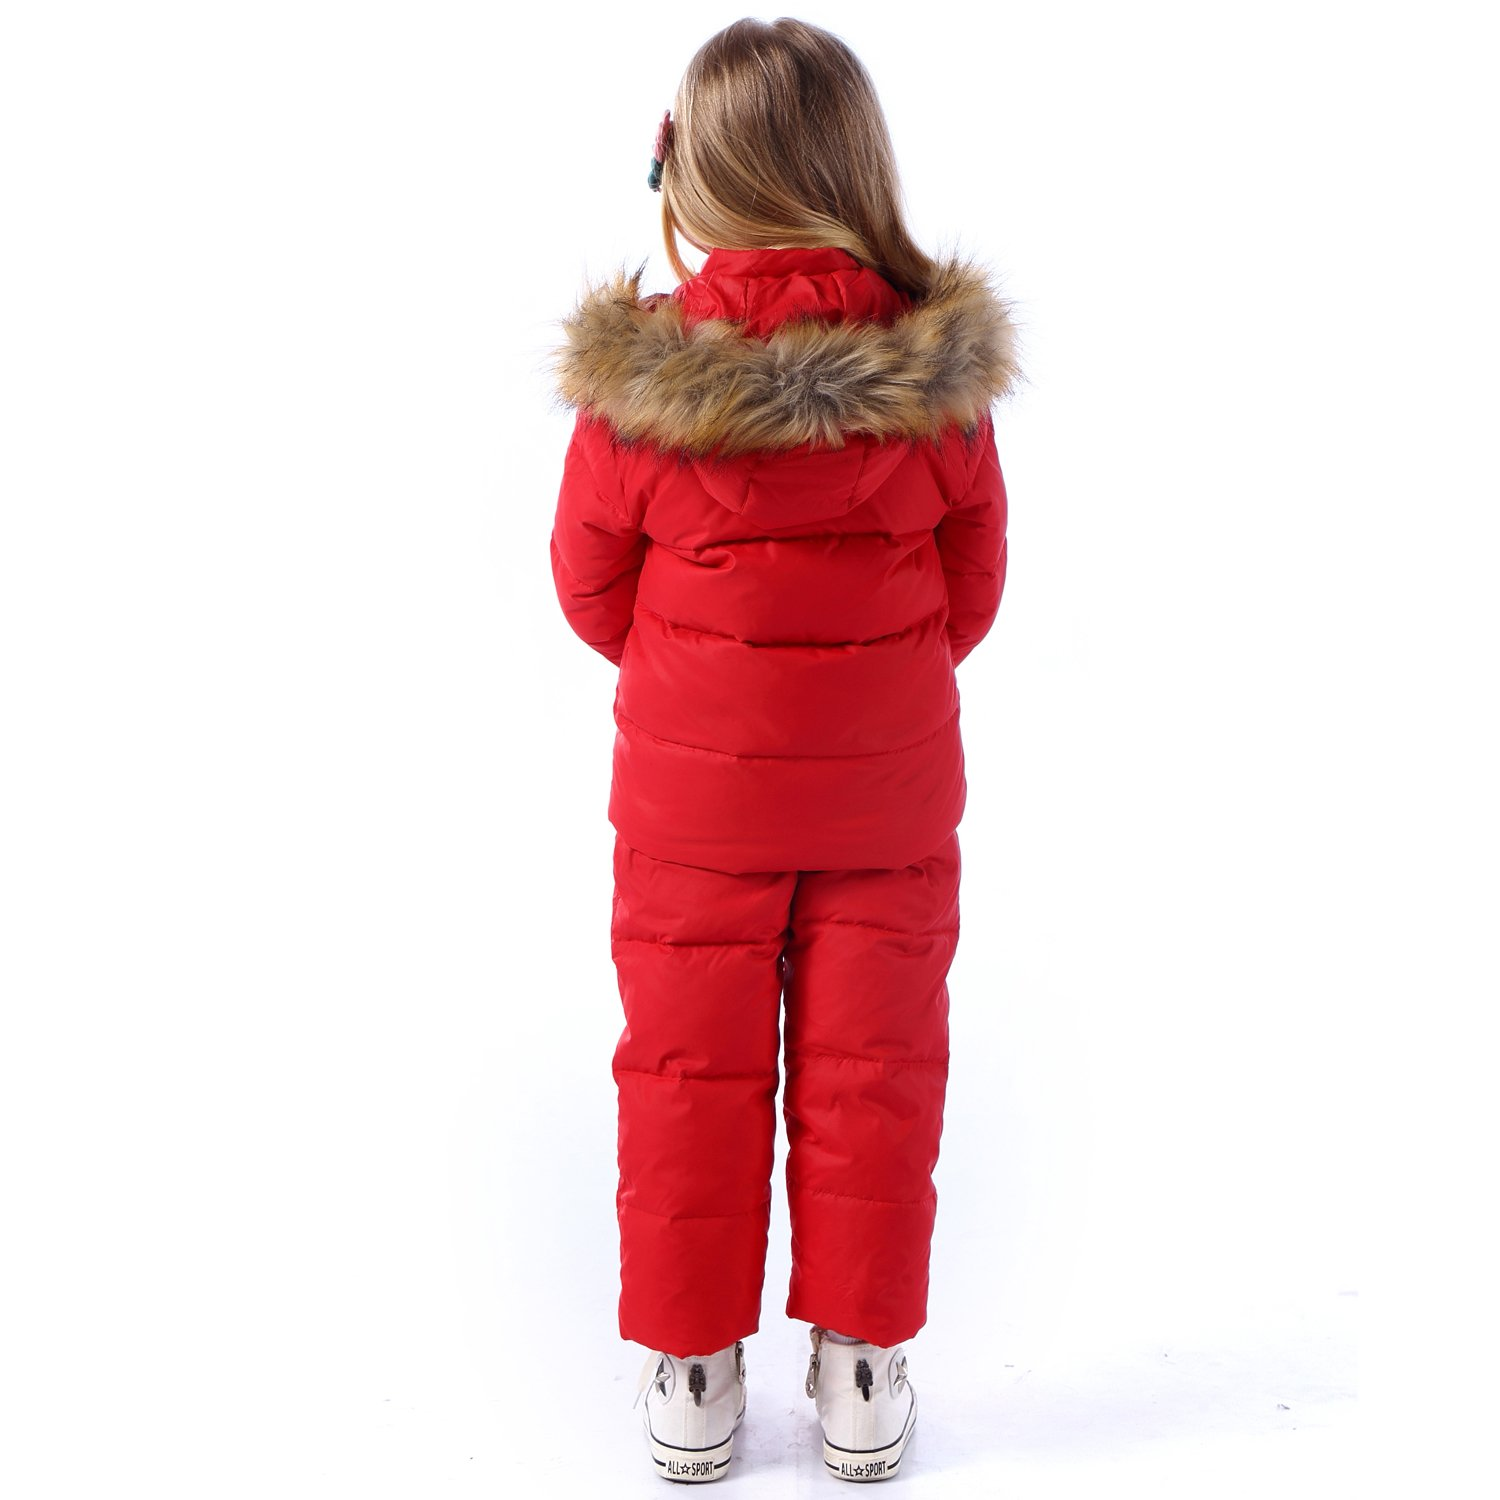 Trousers Snowsuit Warm Clothes ZOEREA Unisex Baby Winter Snowsuit Newest Children Girls Clothing Sets Winter Hooded Duck Down Jacket